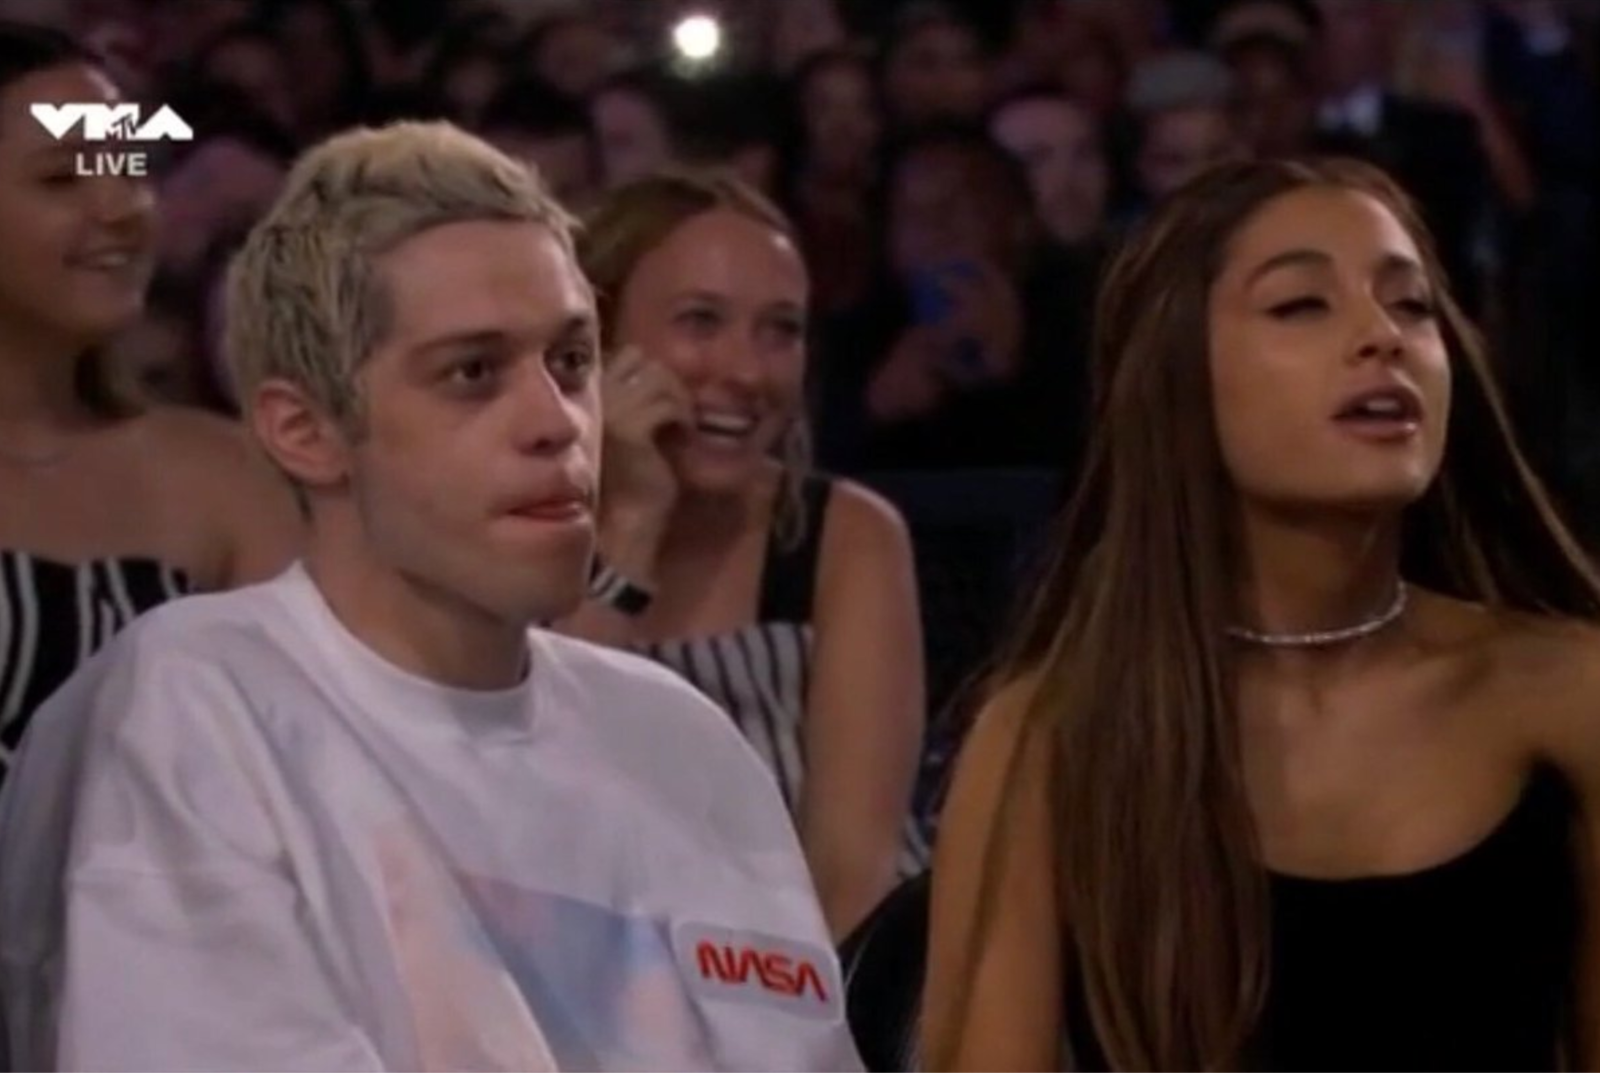 Buzzffed Best Of Ariana Grande: Ariana Grande Is The Queen Of Squinting But Like Low-Key